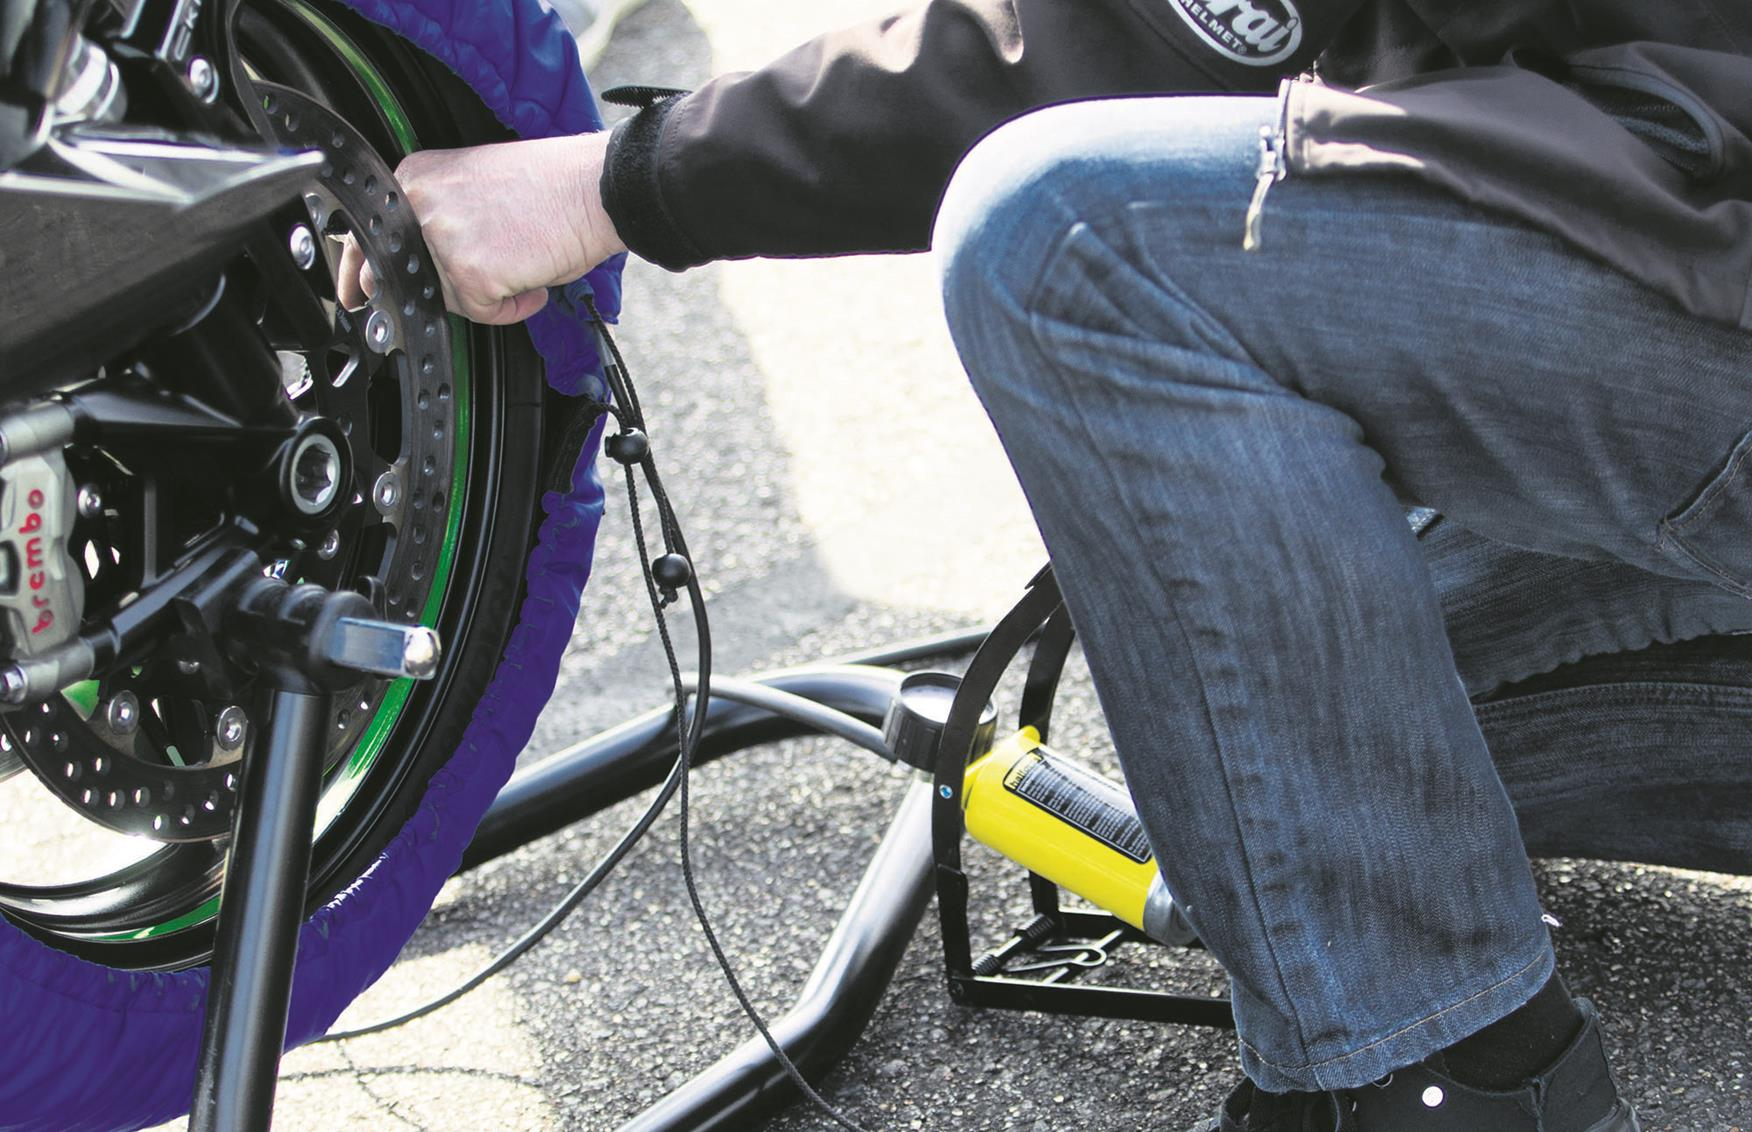 Tyre warmers can be useful, but are not needed